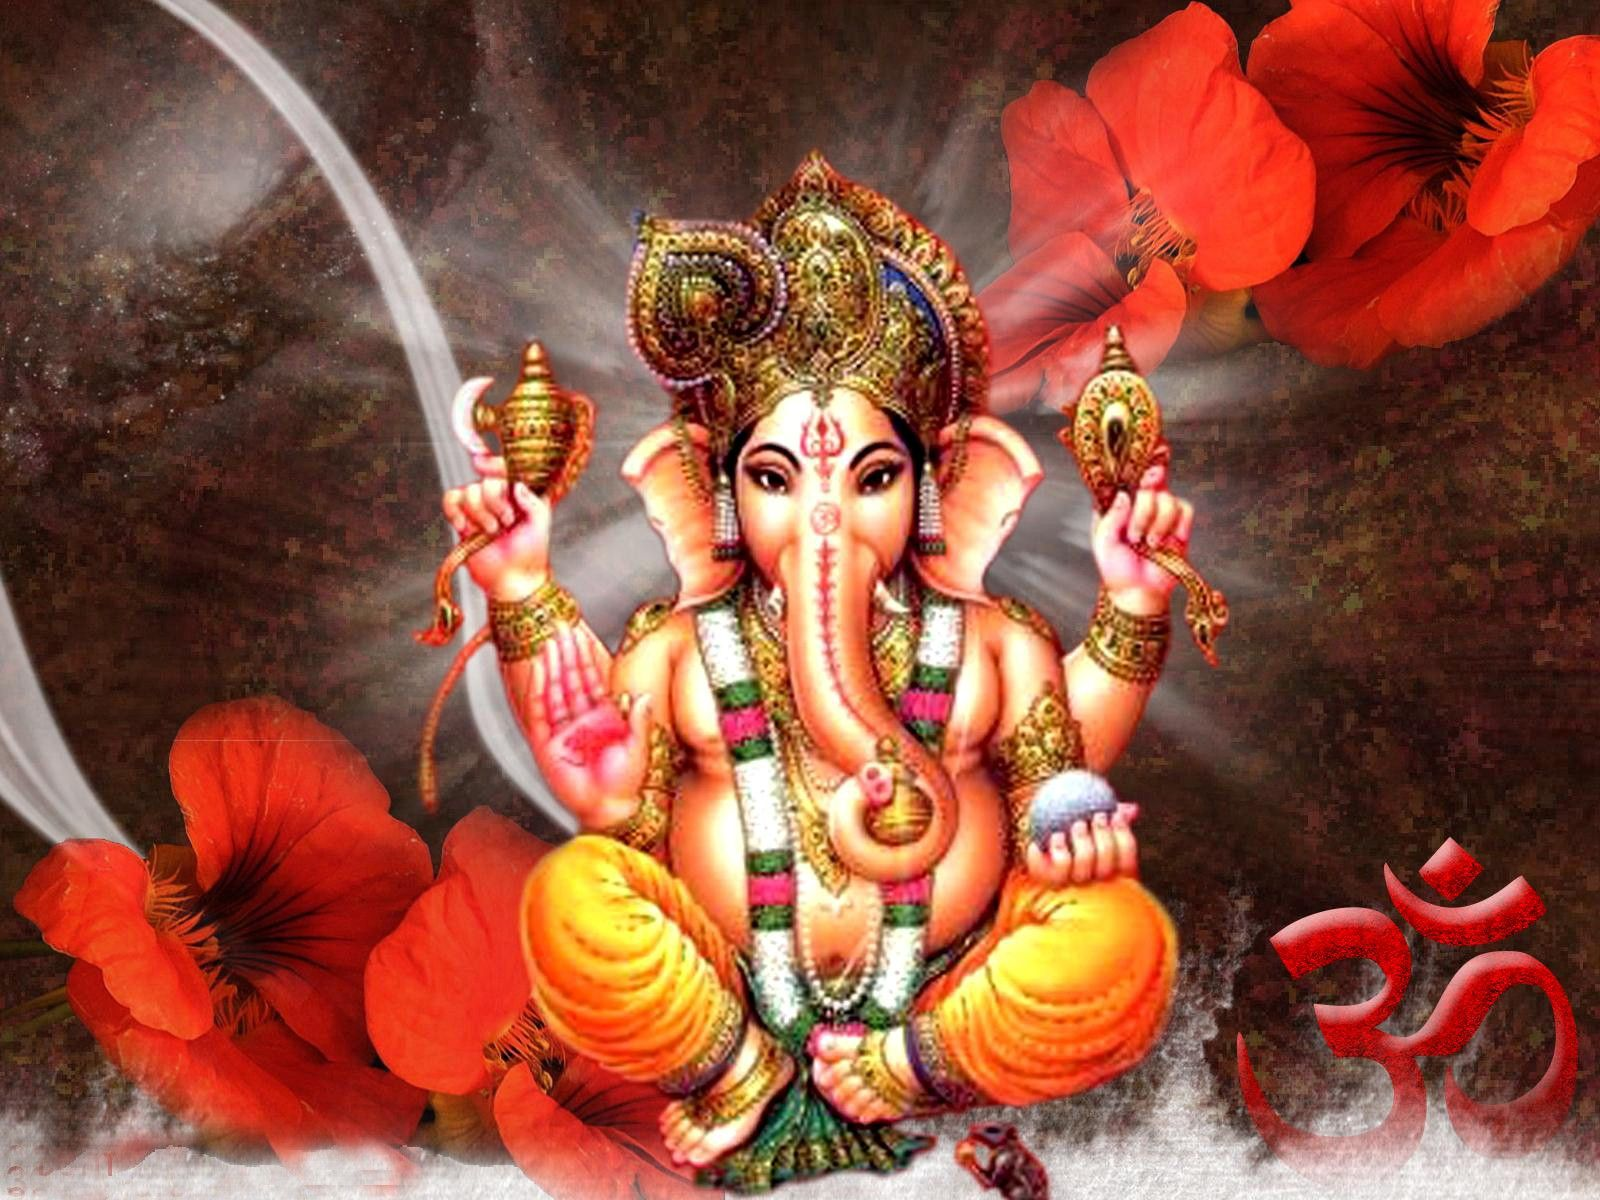 Hd wallpaper ganpati - Ganesha Images Lord Ganesha Wallpapers Ganesha Pictures